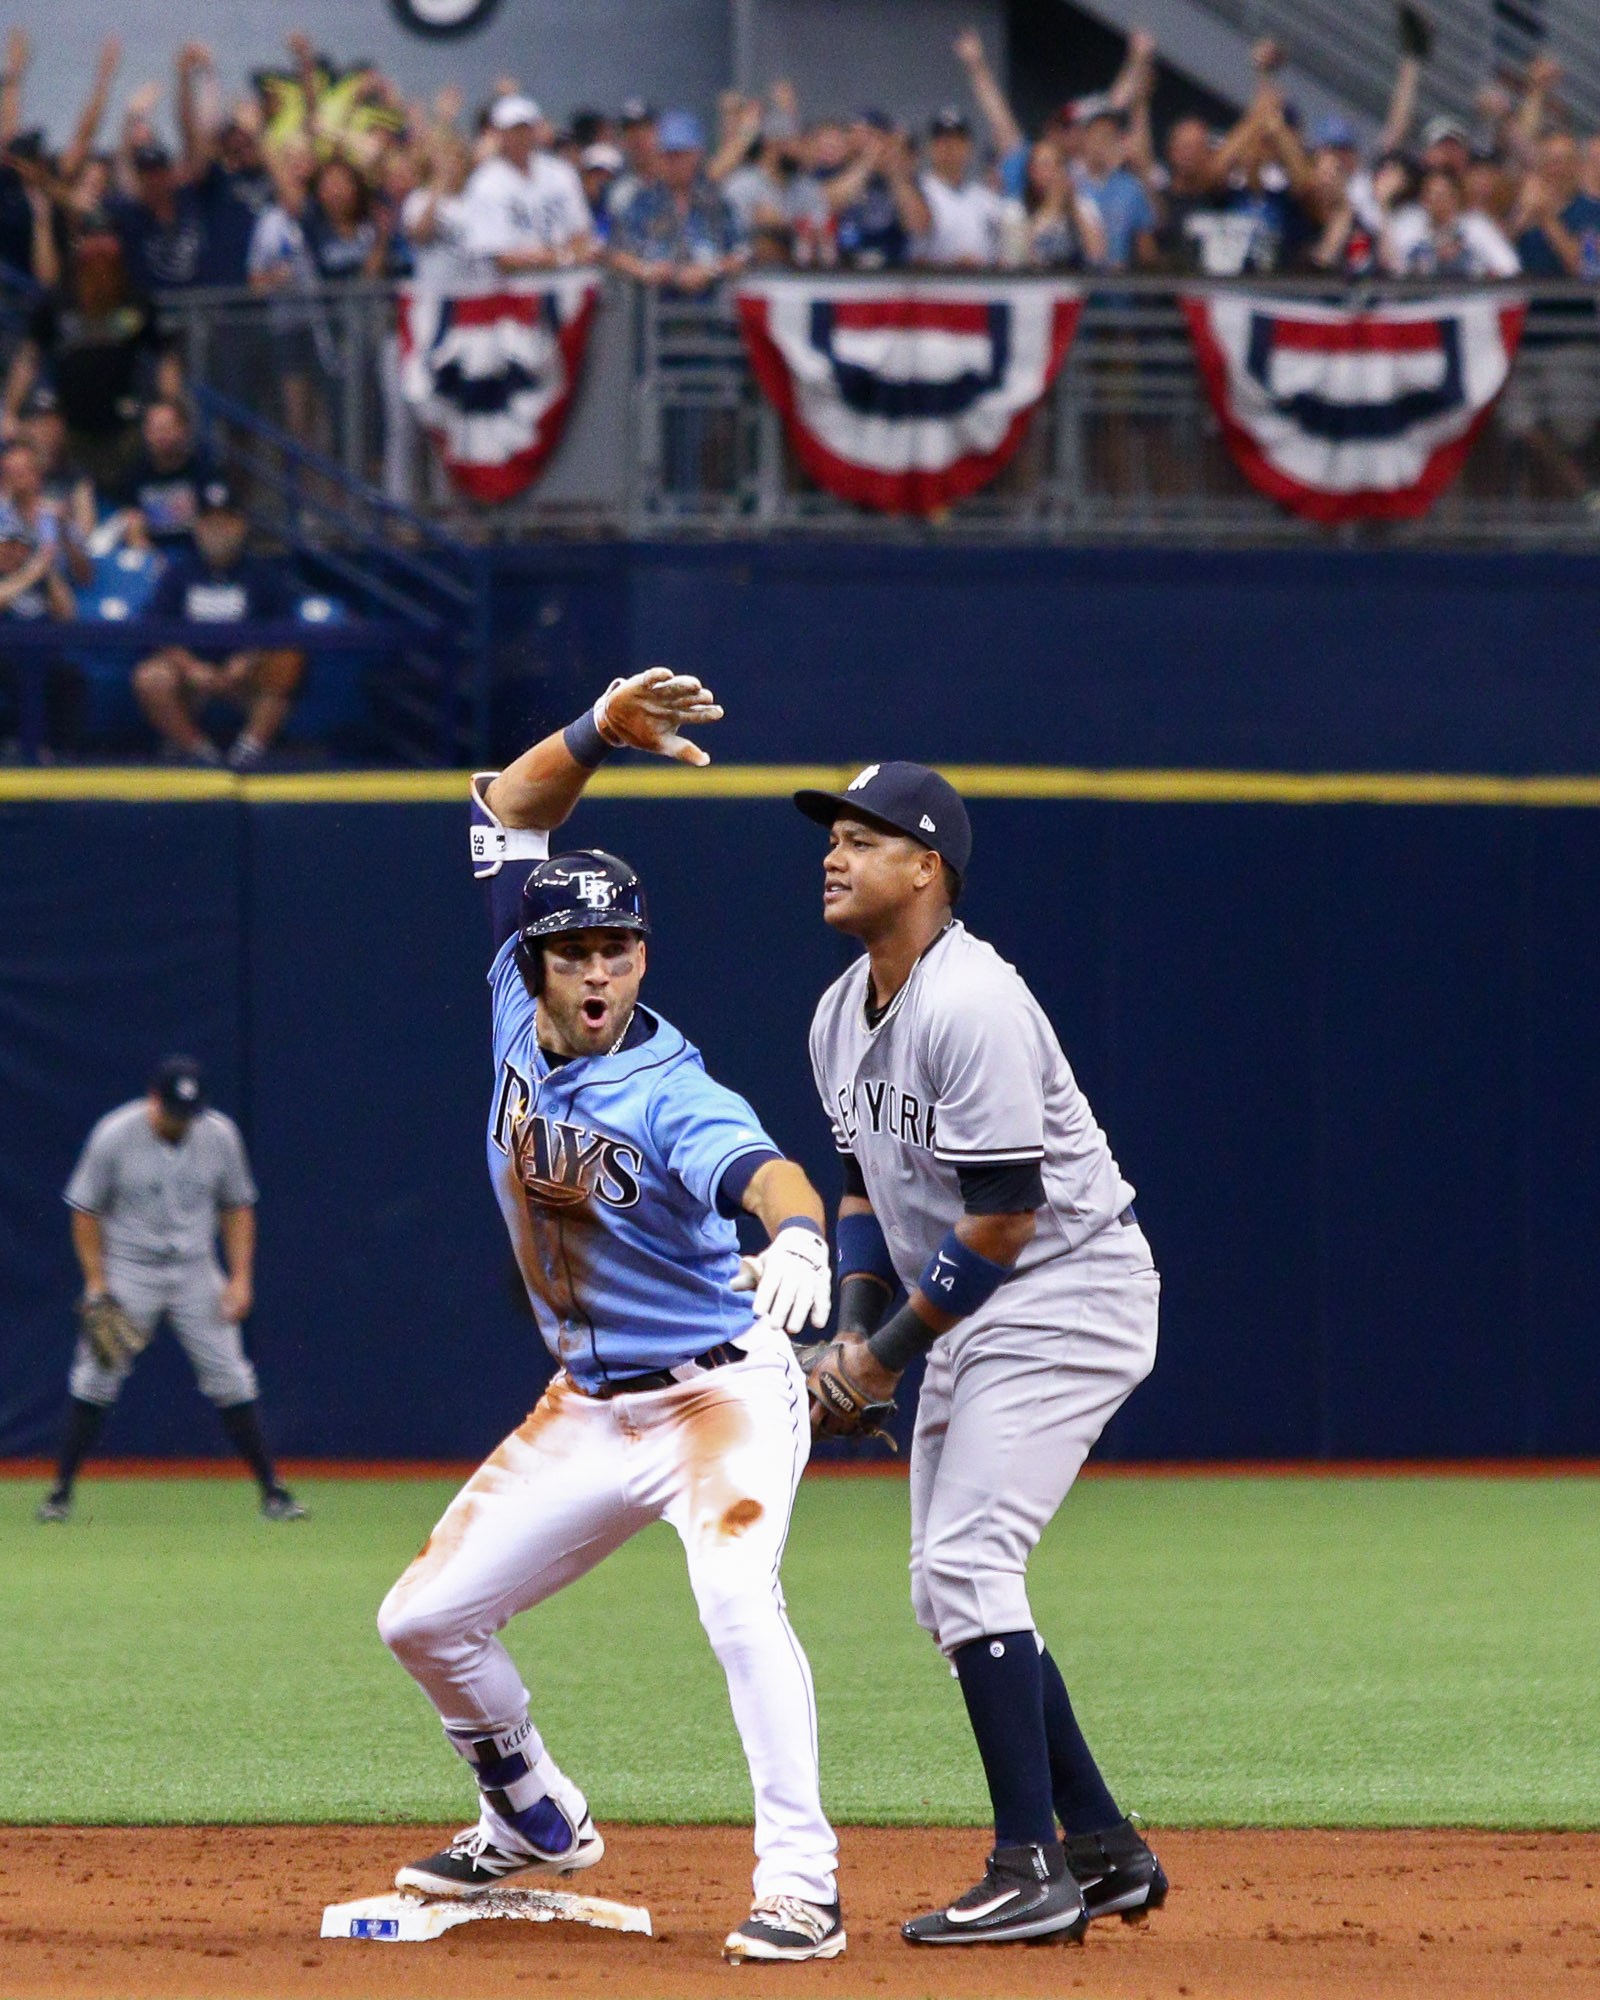 Kiermaier reacts after doubling in the 1st./ANDREW J. KRAMER